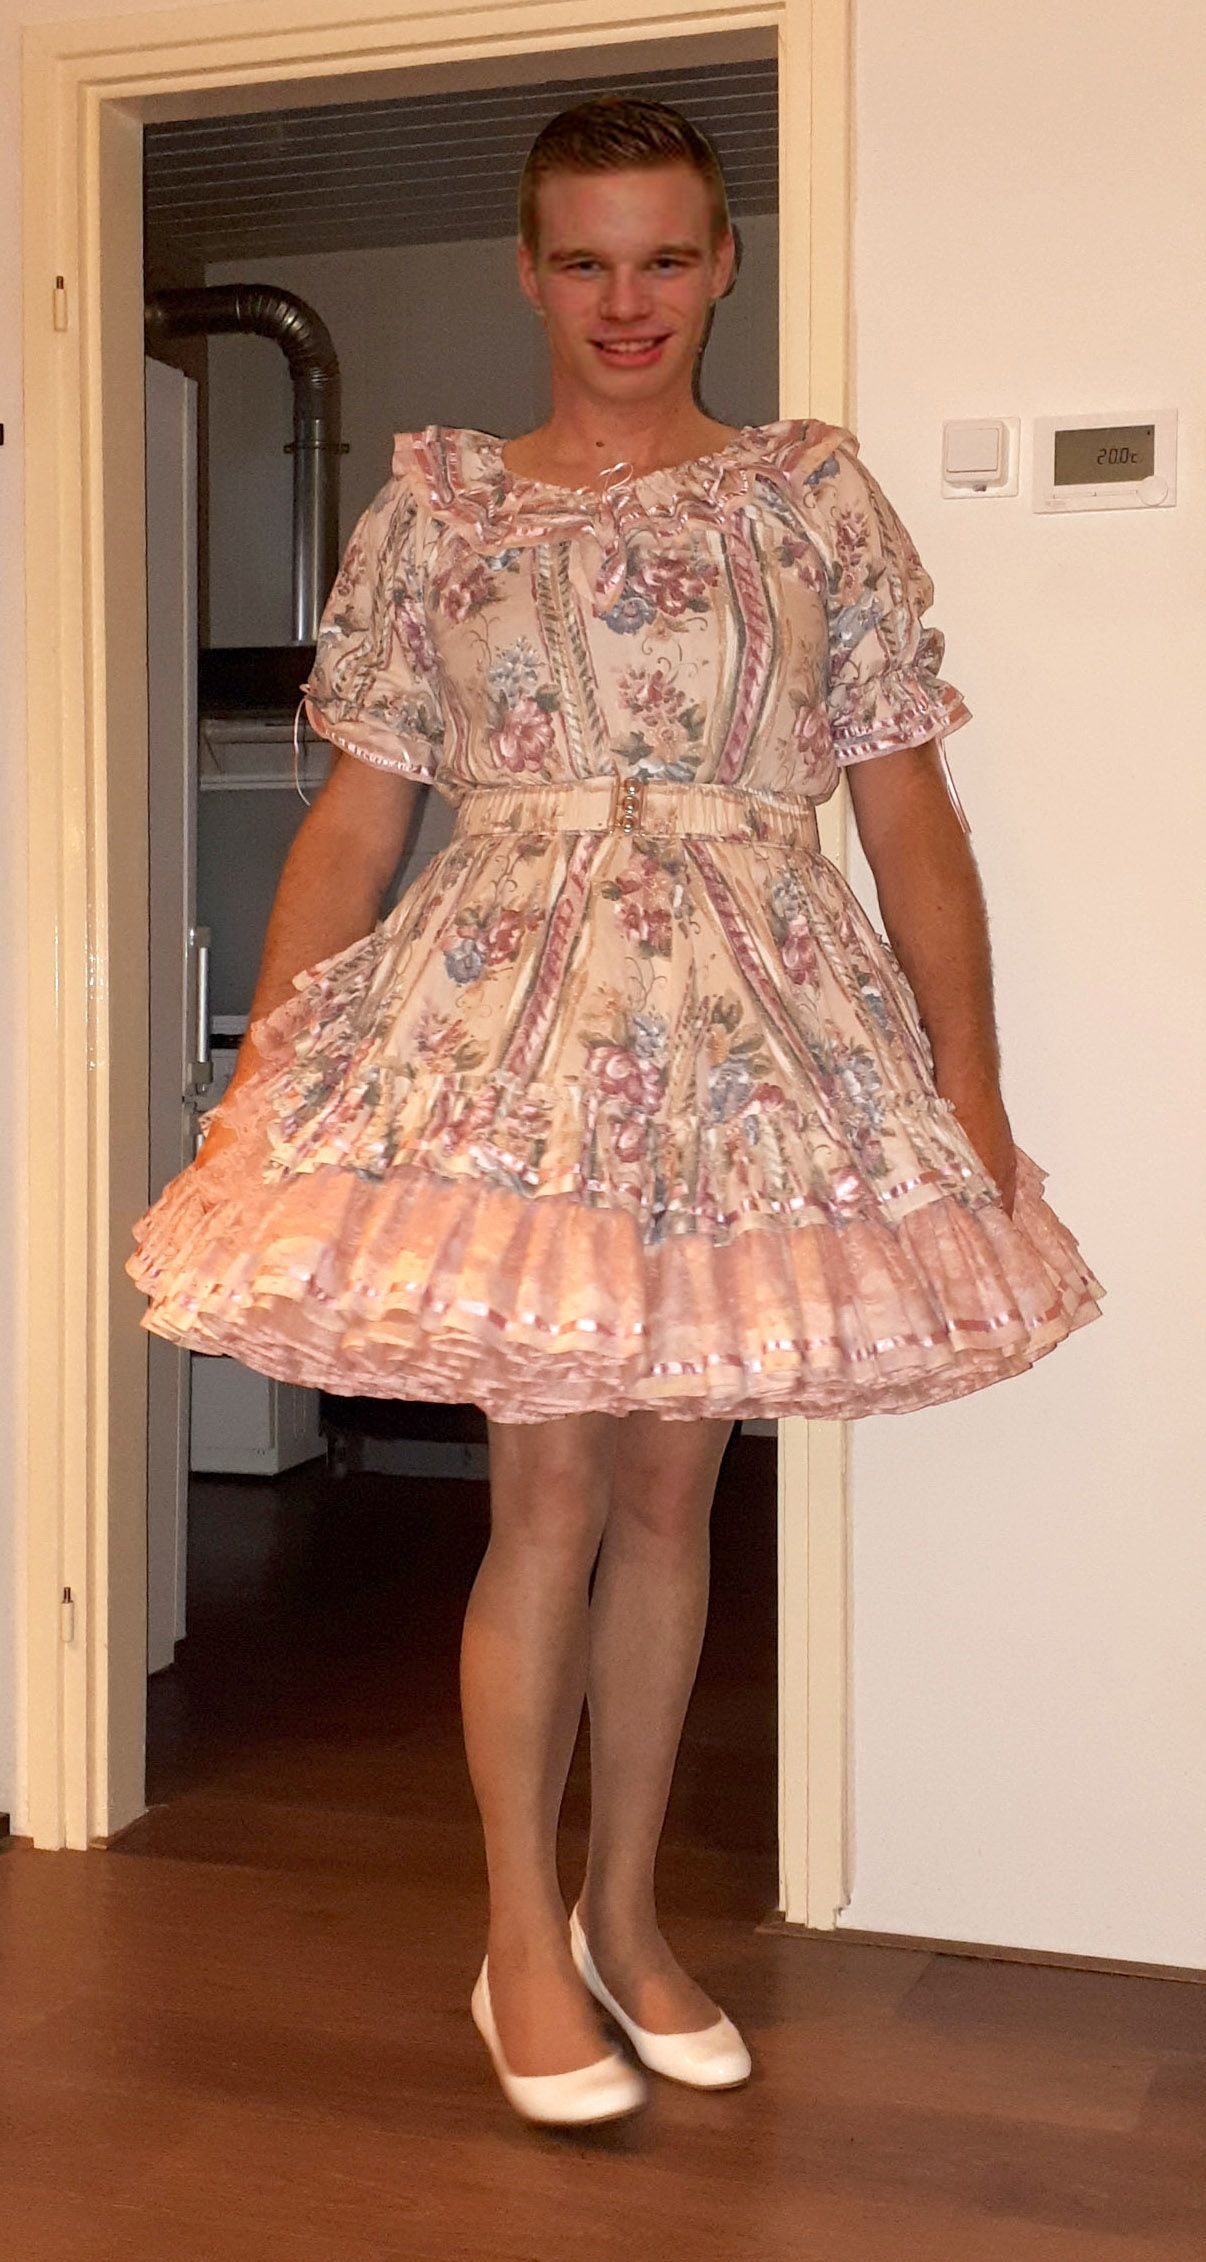 dfb9b2883fe99c my new dress with pink petticoat. love to wear it all day long Prissy Sissy